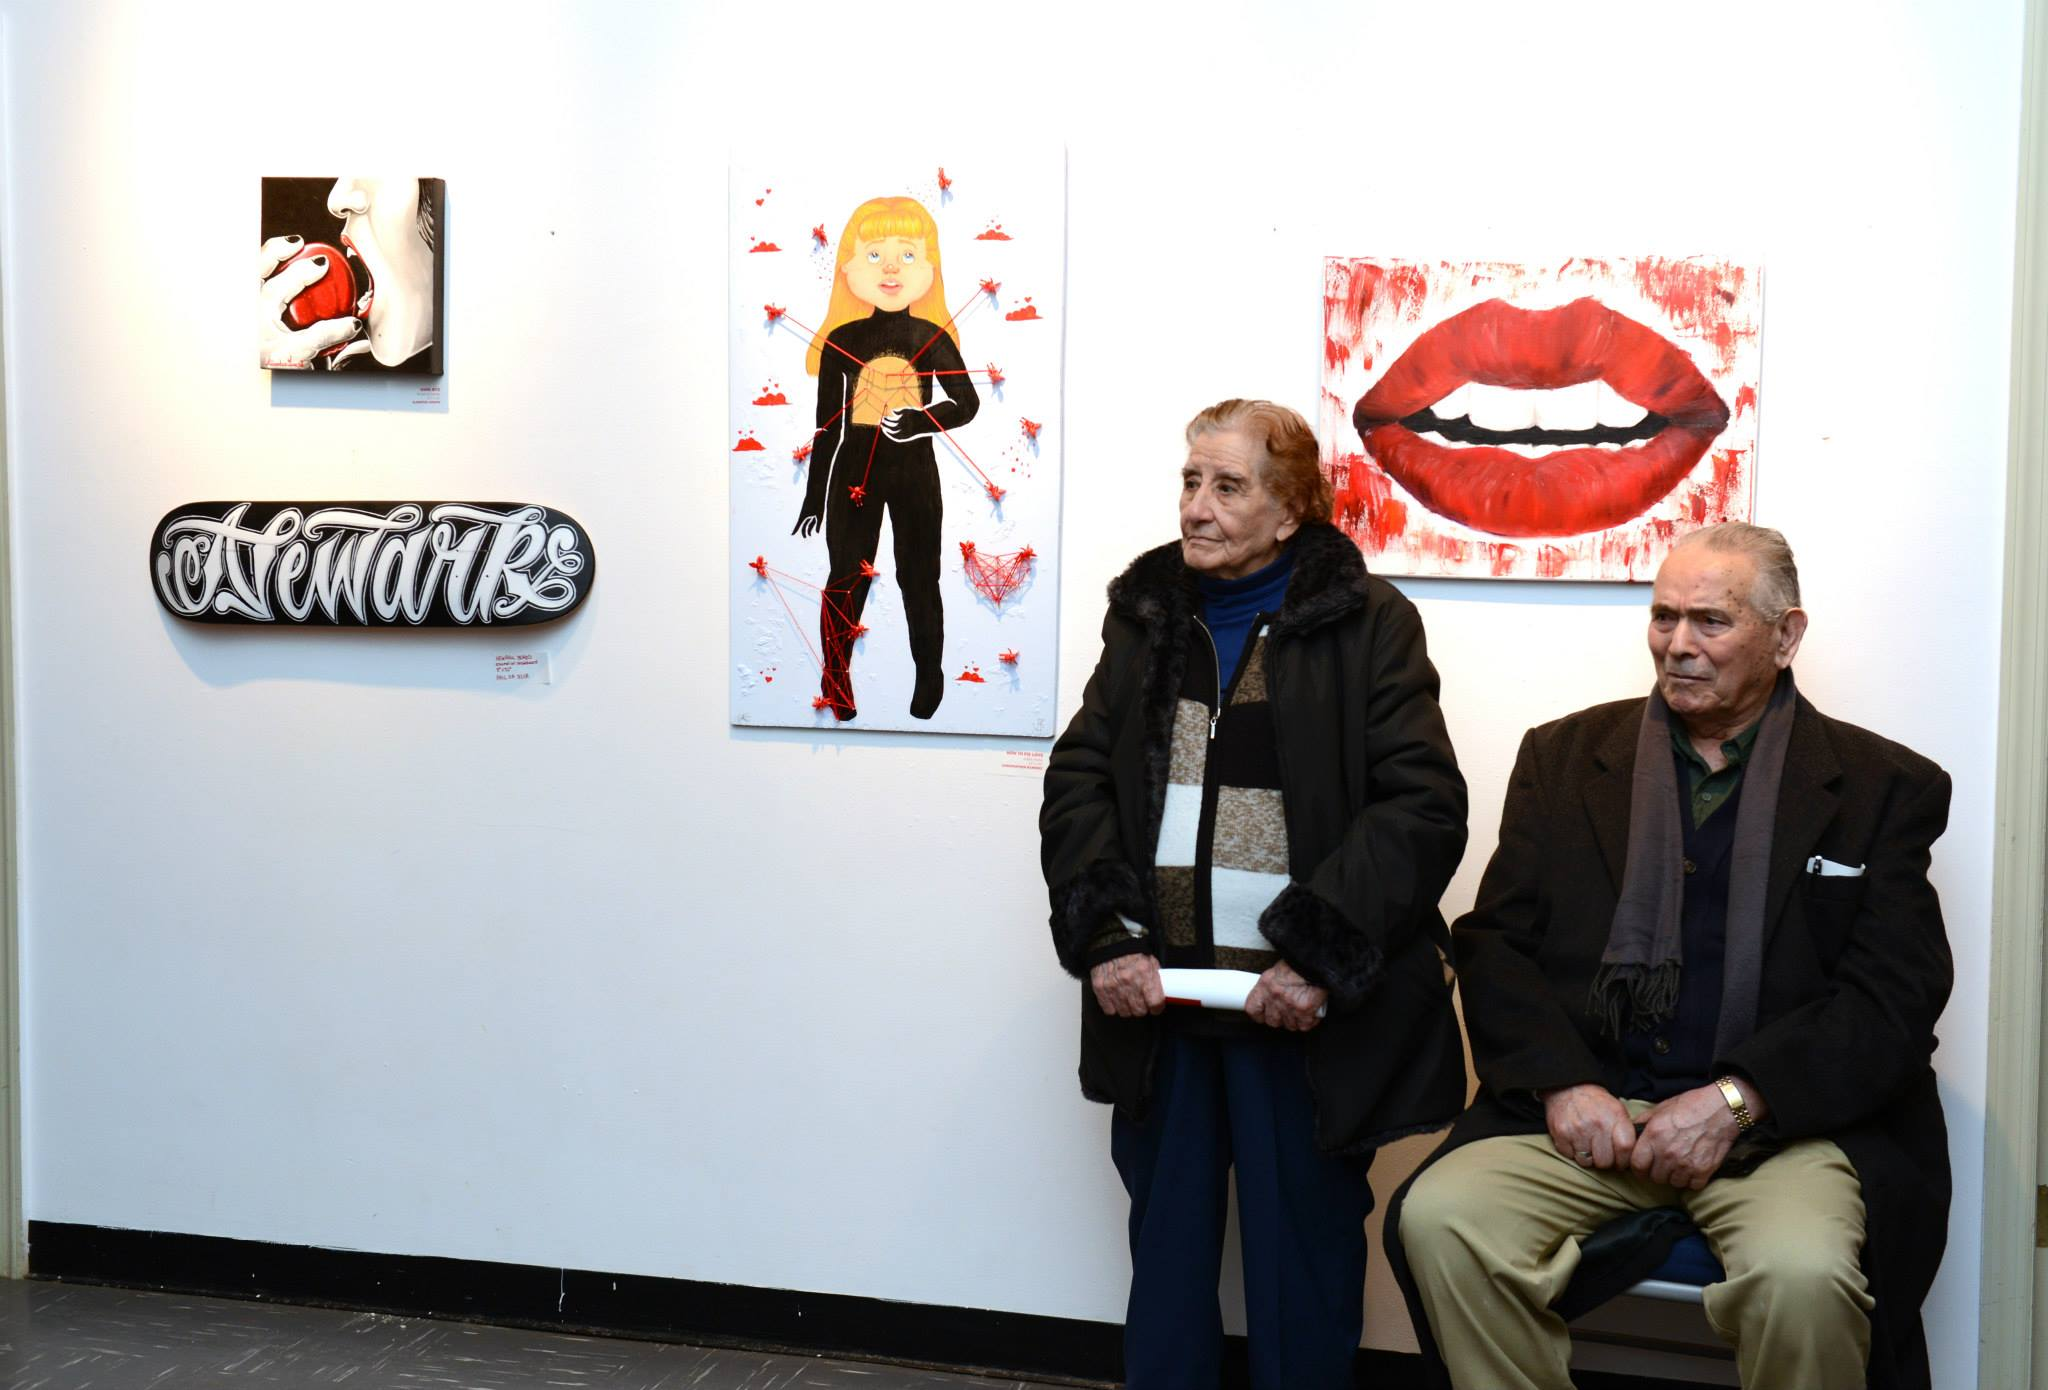 Annual Red Exhibit at the Perth Amboy Gallery Center for the Arts